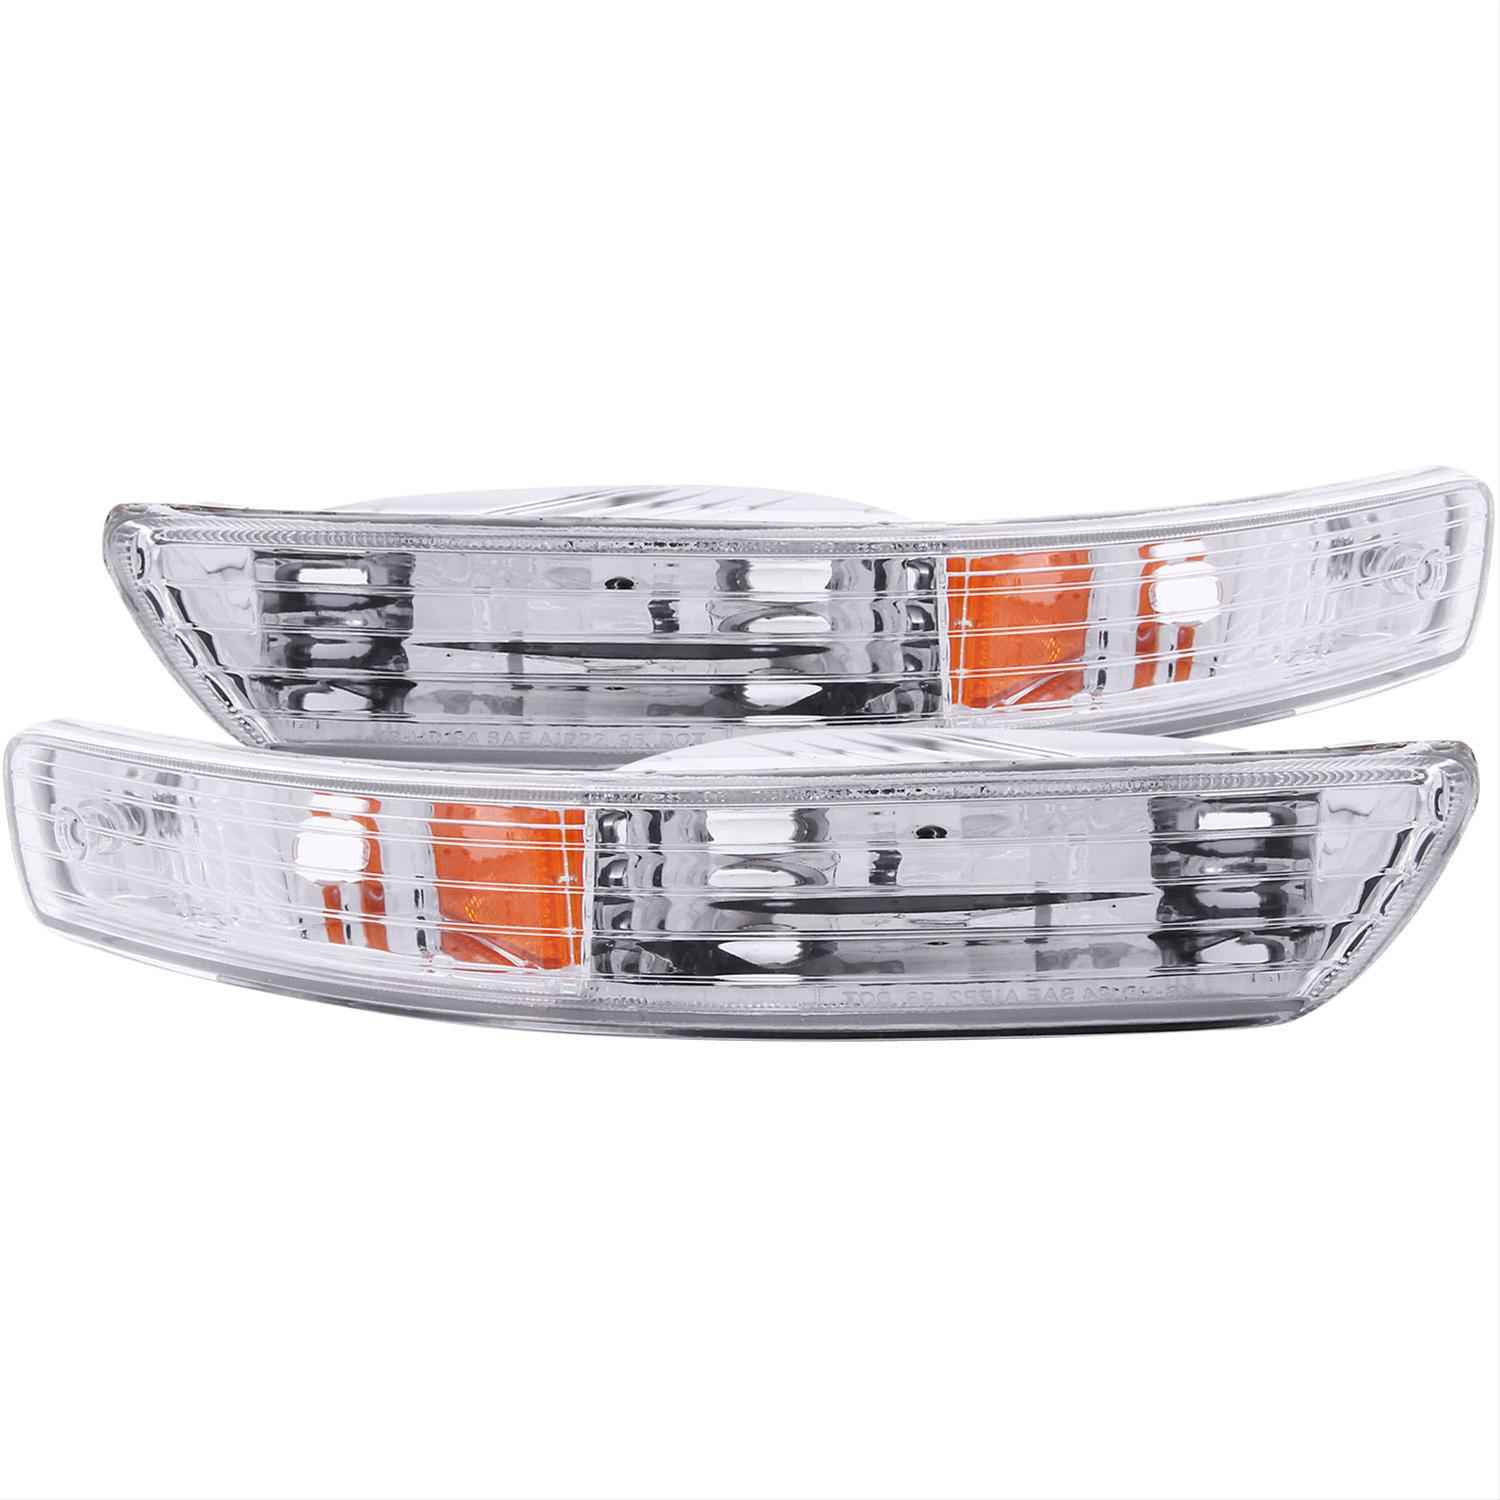 Anzo USA 511007 Honda Accord Chrome Euro w//Amber Reflector Bumper Light Assembly Sold in Pairs